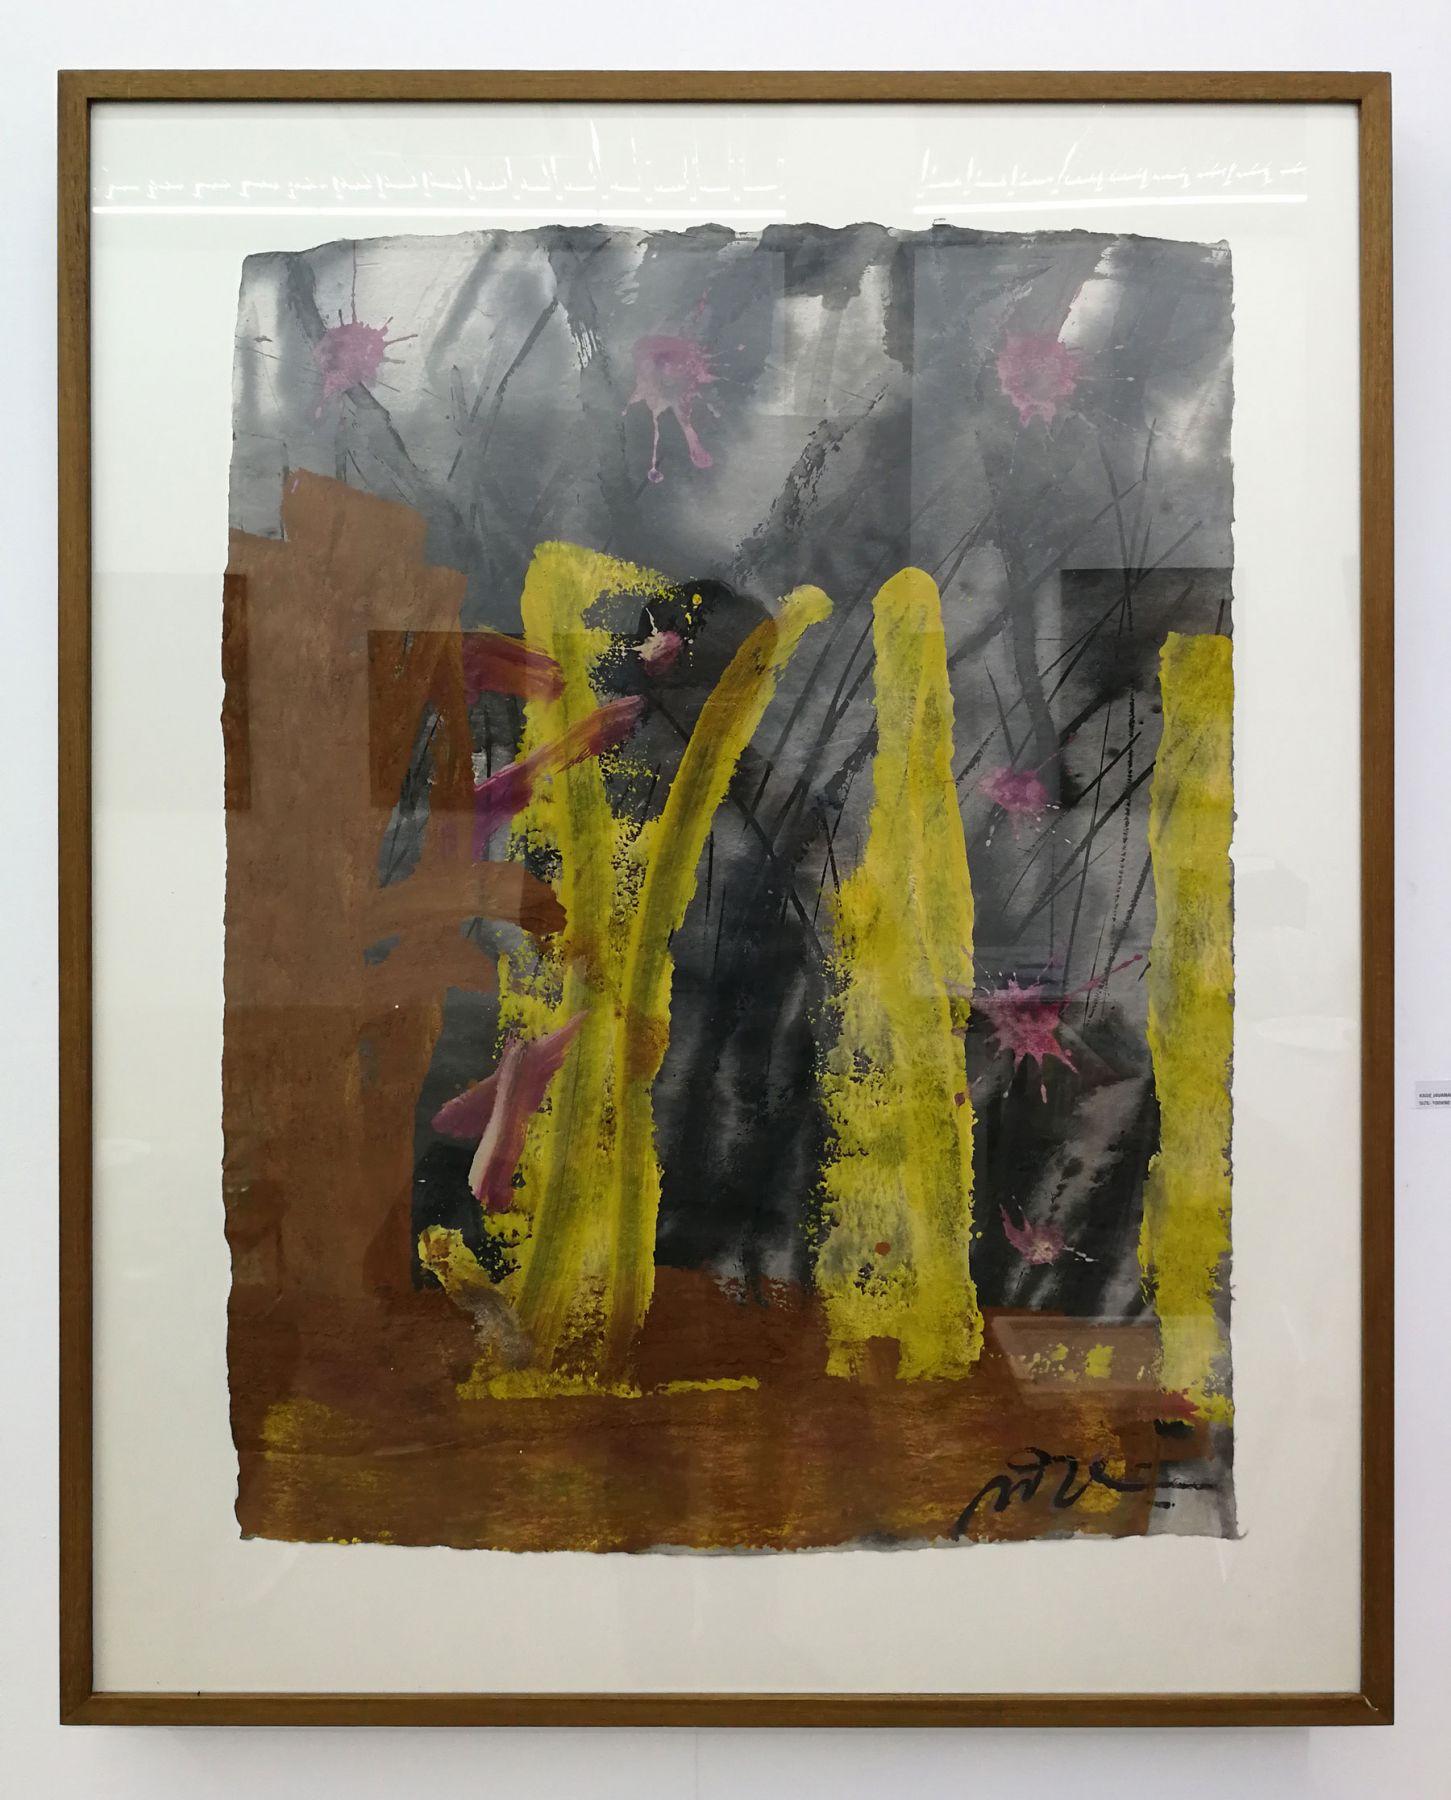 Somluk Pantiboon Untitled (Pink, Yellow, Brown), 2018 clay pigment and acrylic on mulberry paper 42.9 x 33.1 in (109 x 84 cm)